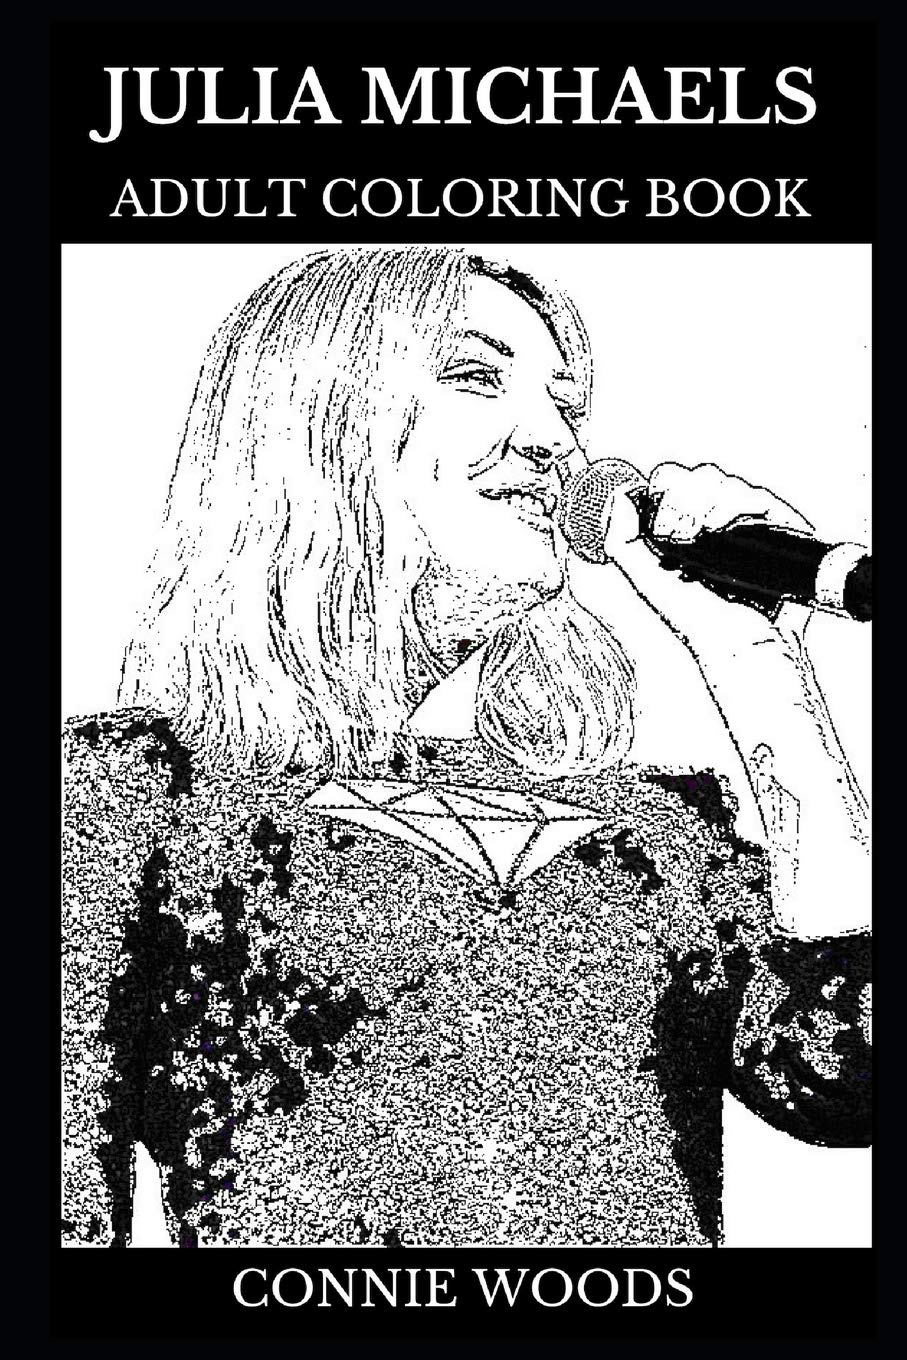 Julia Michaels Adult Coloring Book  Grammy Award Winner And